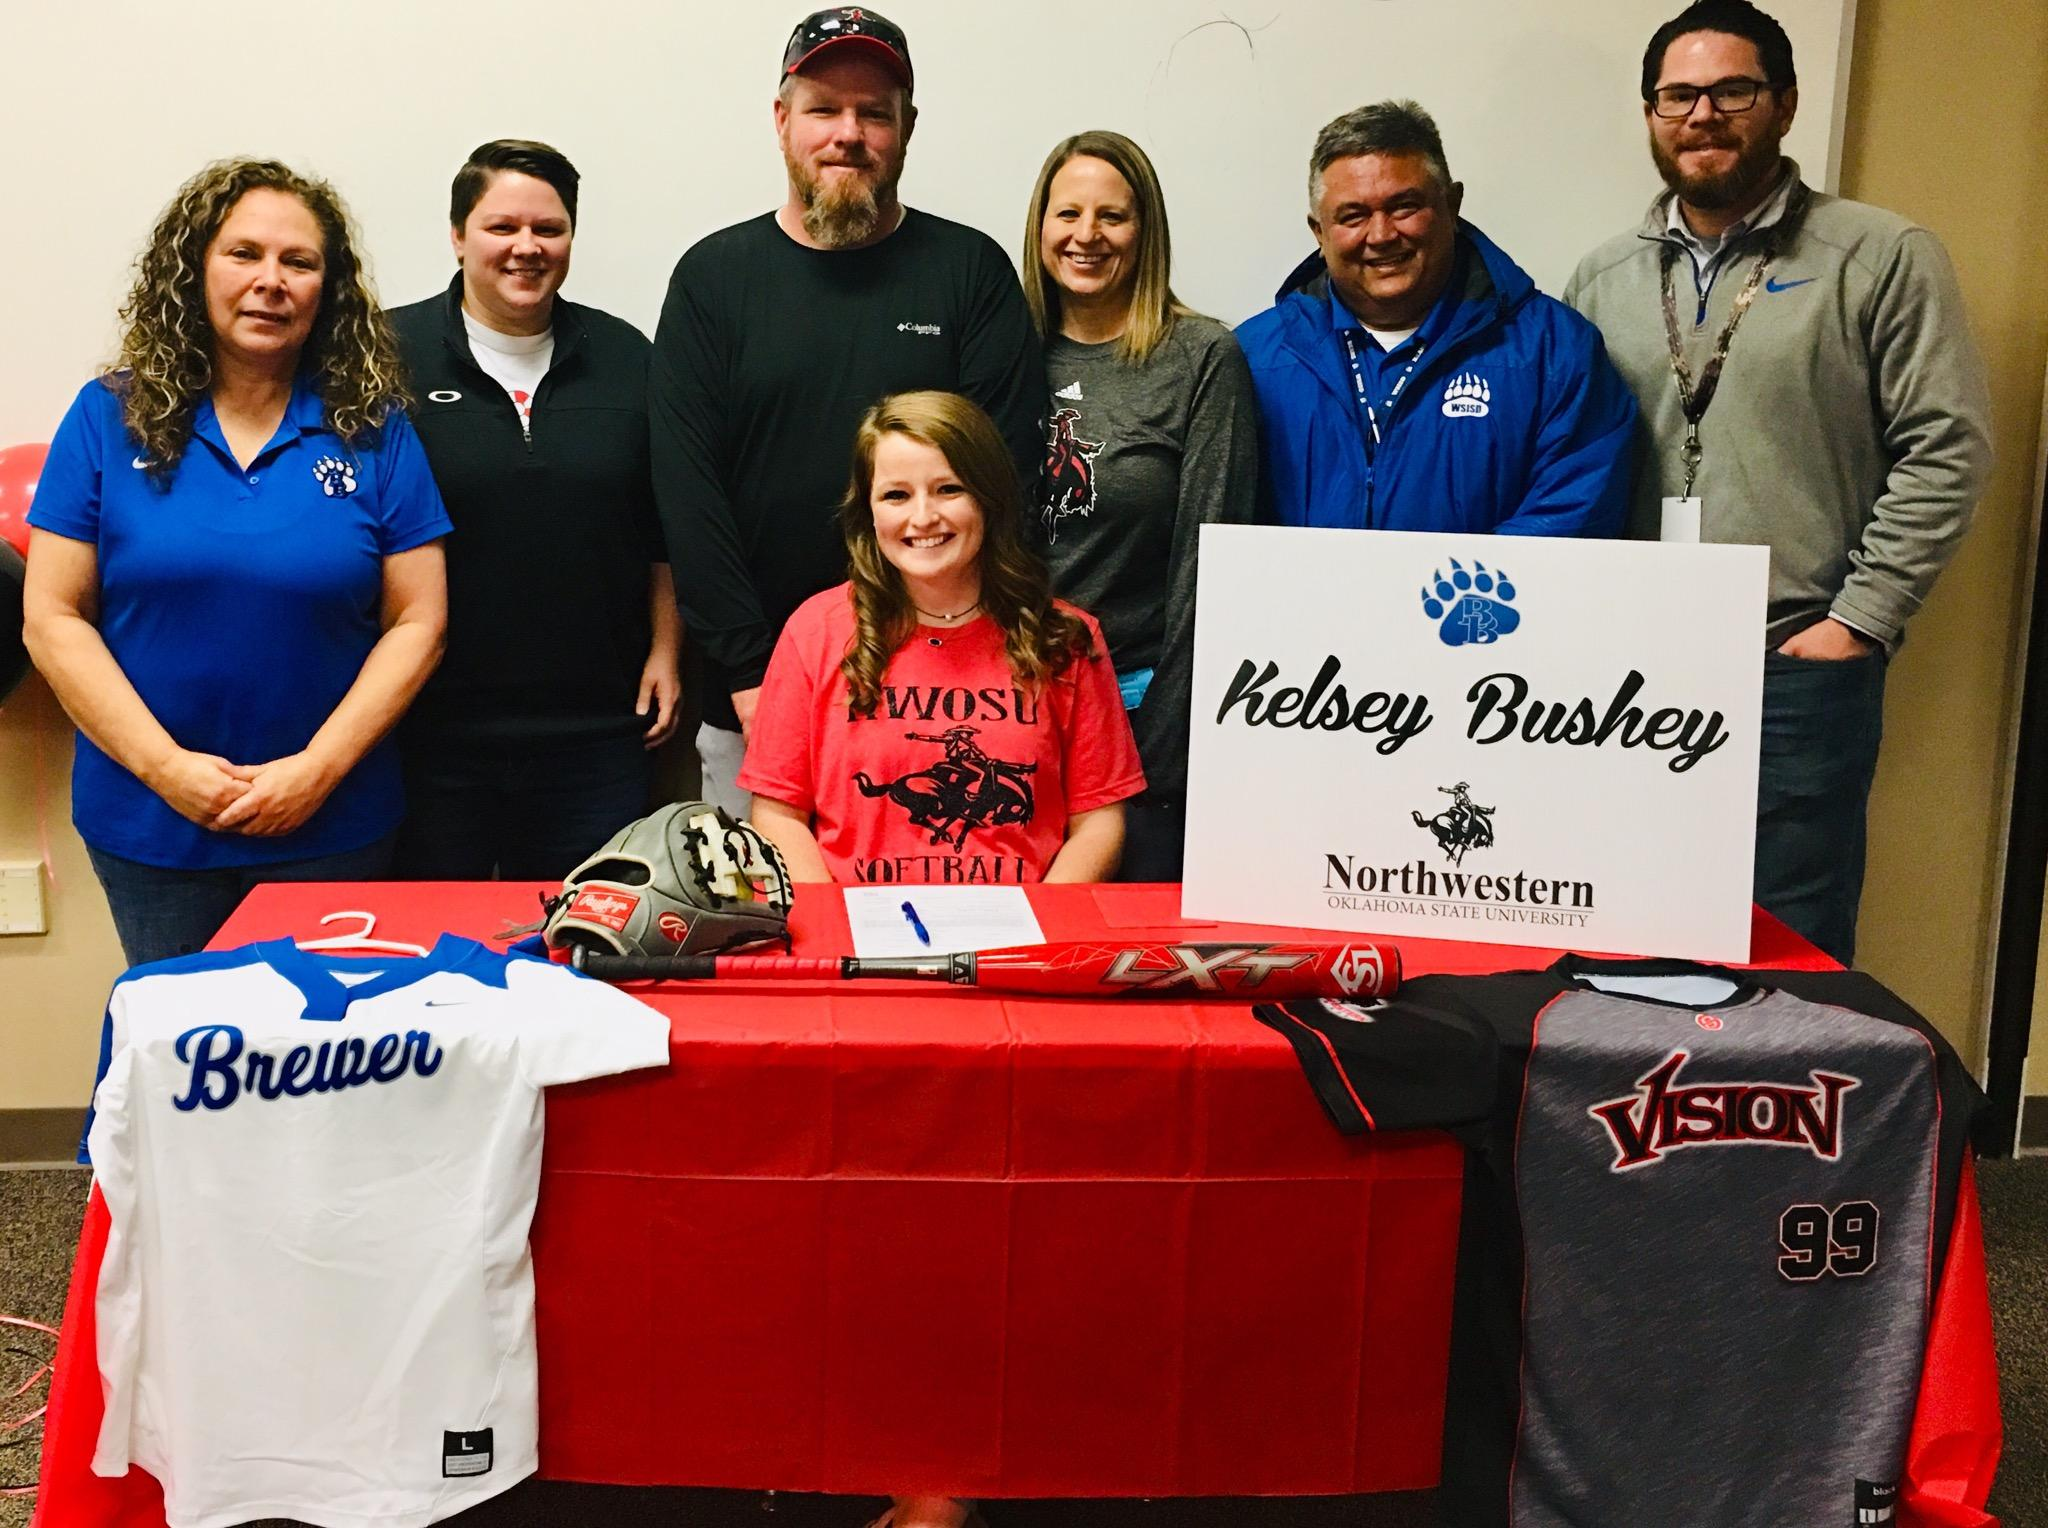 Brewer High School senior Kelsey Bushey signed to play softball at Northwestern Oklahoma State University. She is a four-year letterman for the Lady Bear softball team.